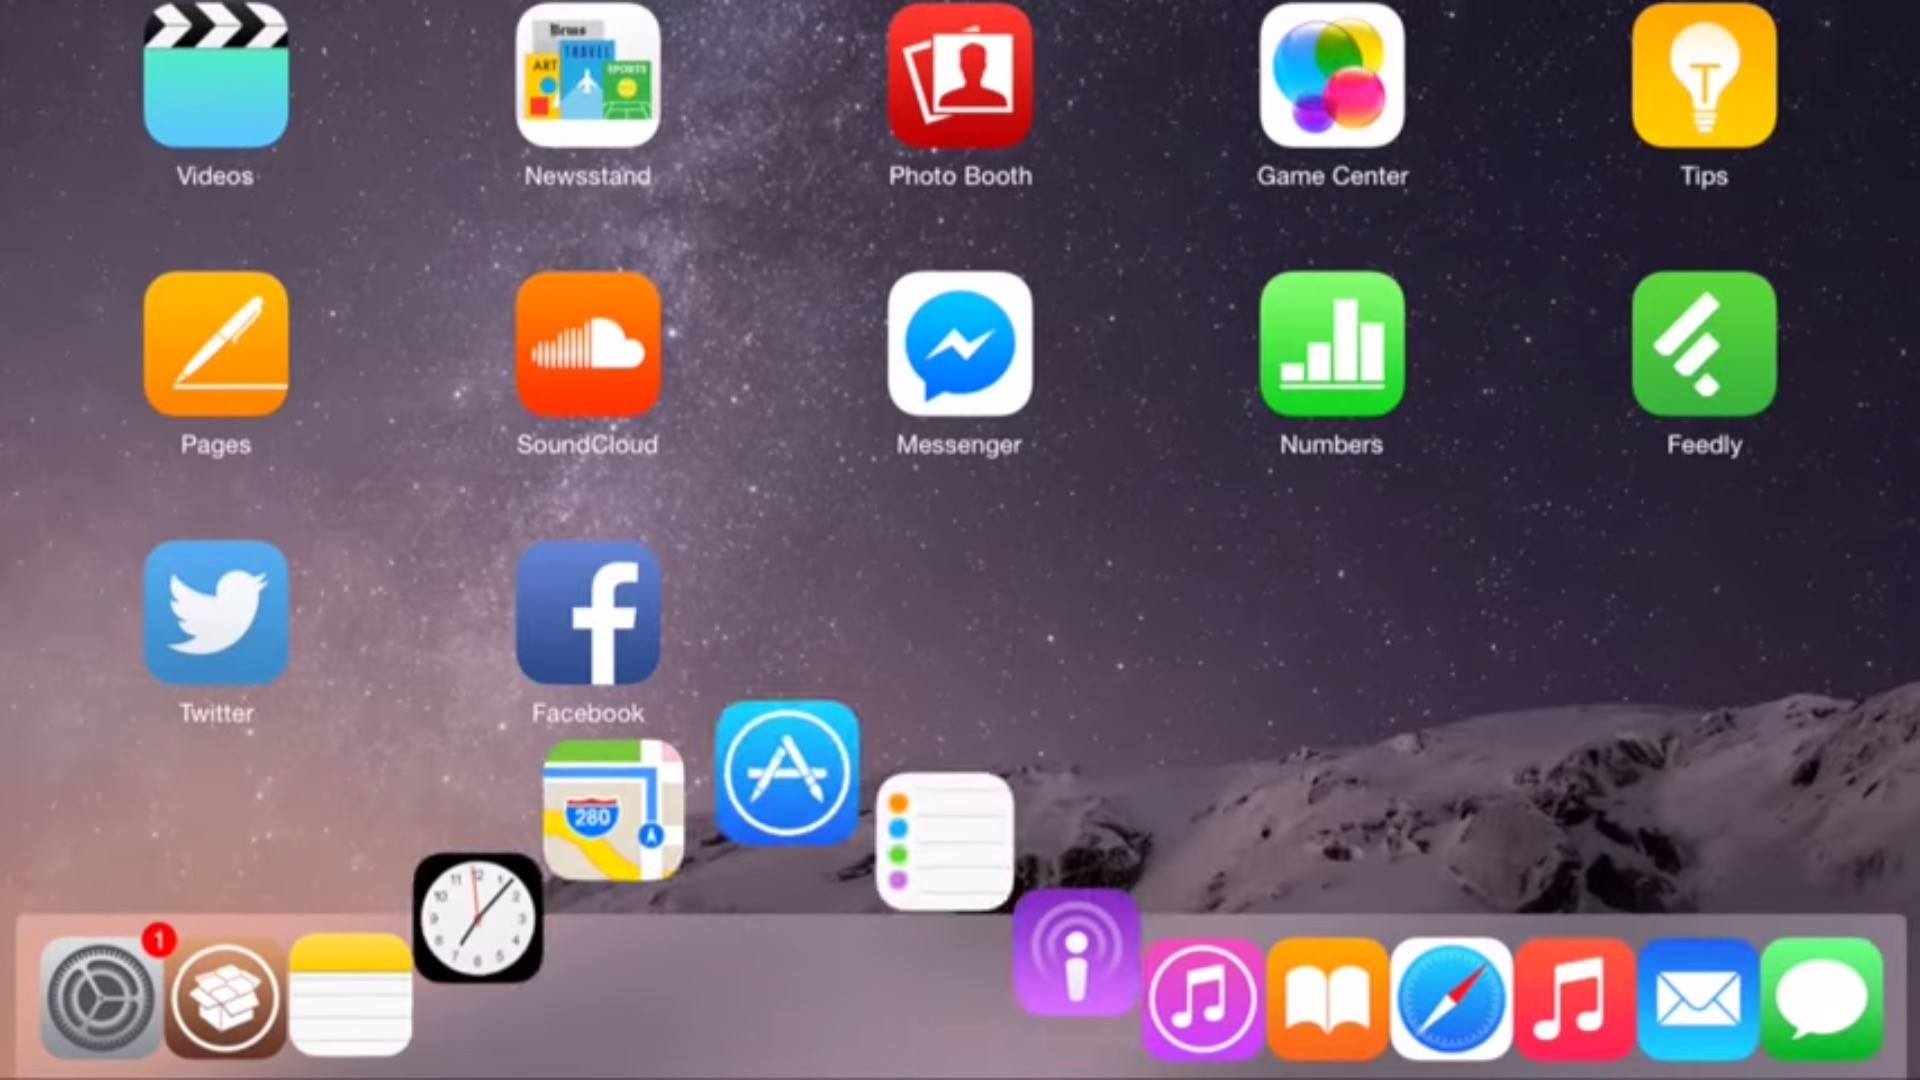 OS X Dock Comes to iOS 8 via Amazing Hack – Video